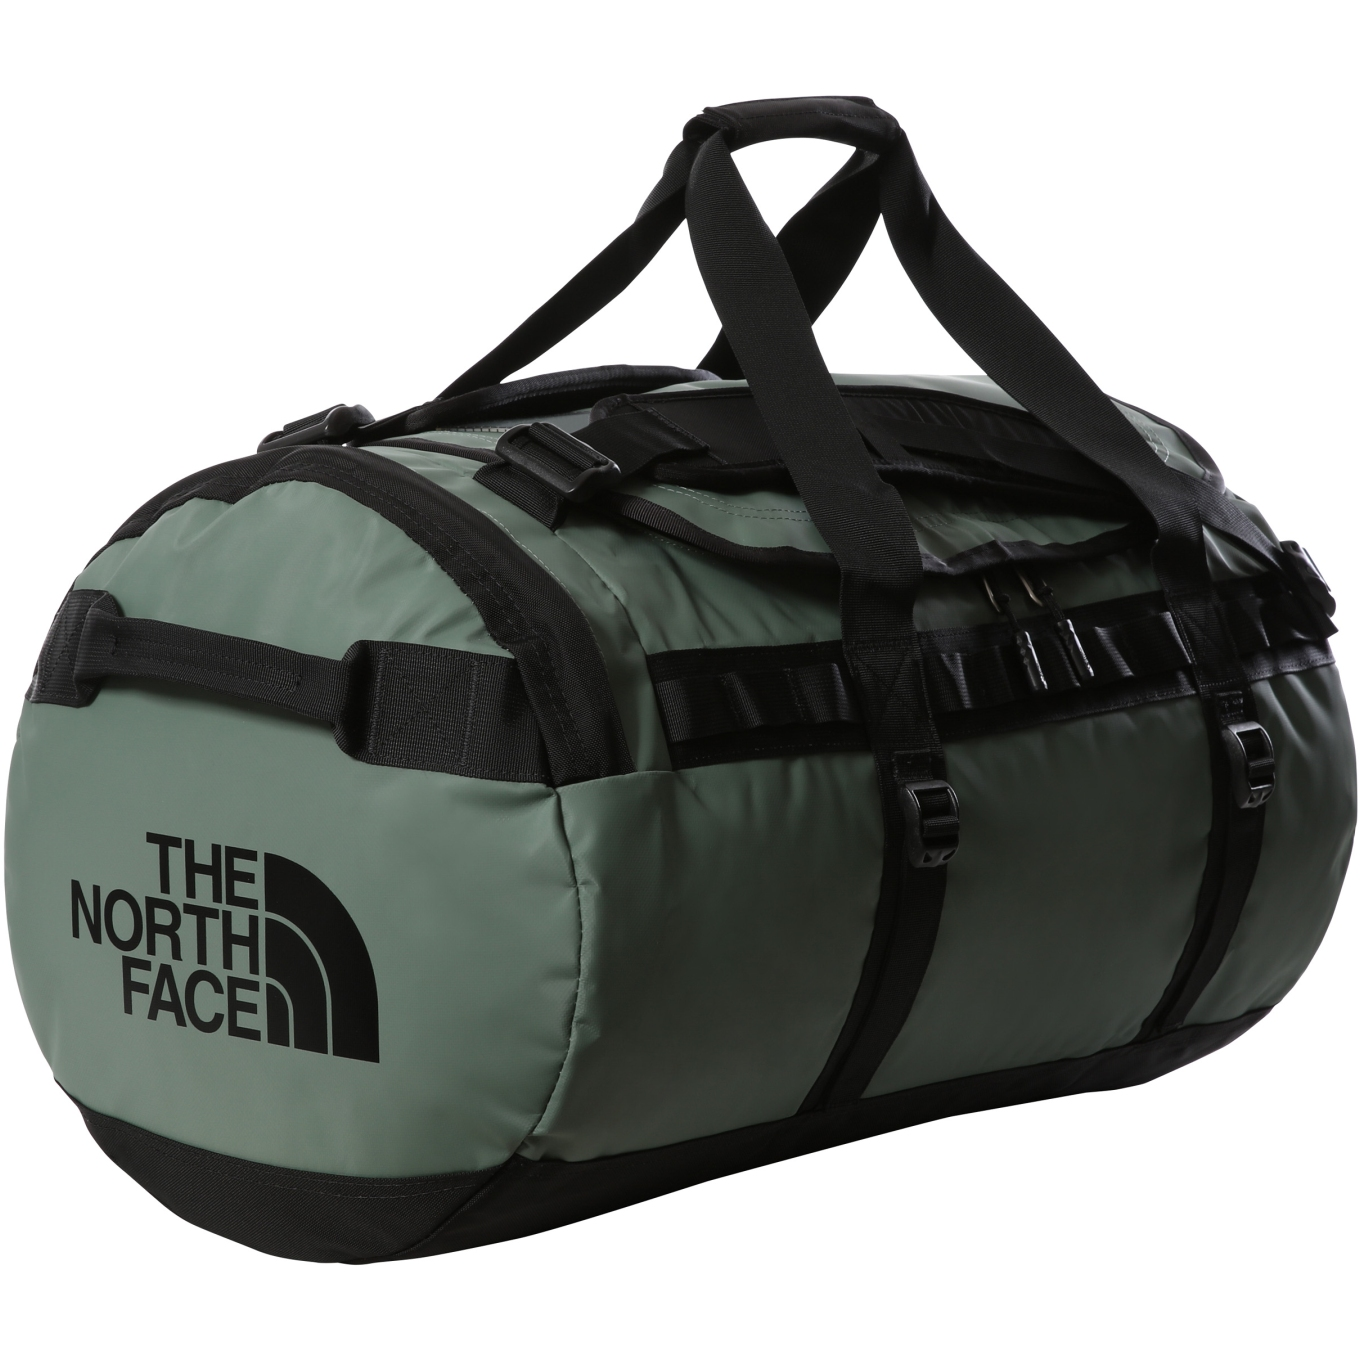 Picture of The North Face Base Camp Duffel - M - Laurel Wreath Green/TNF Black